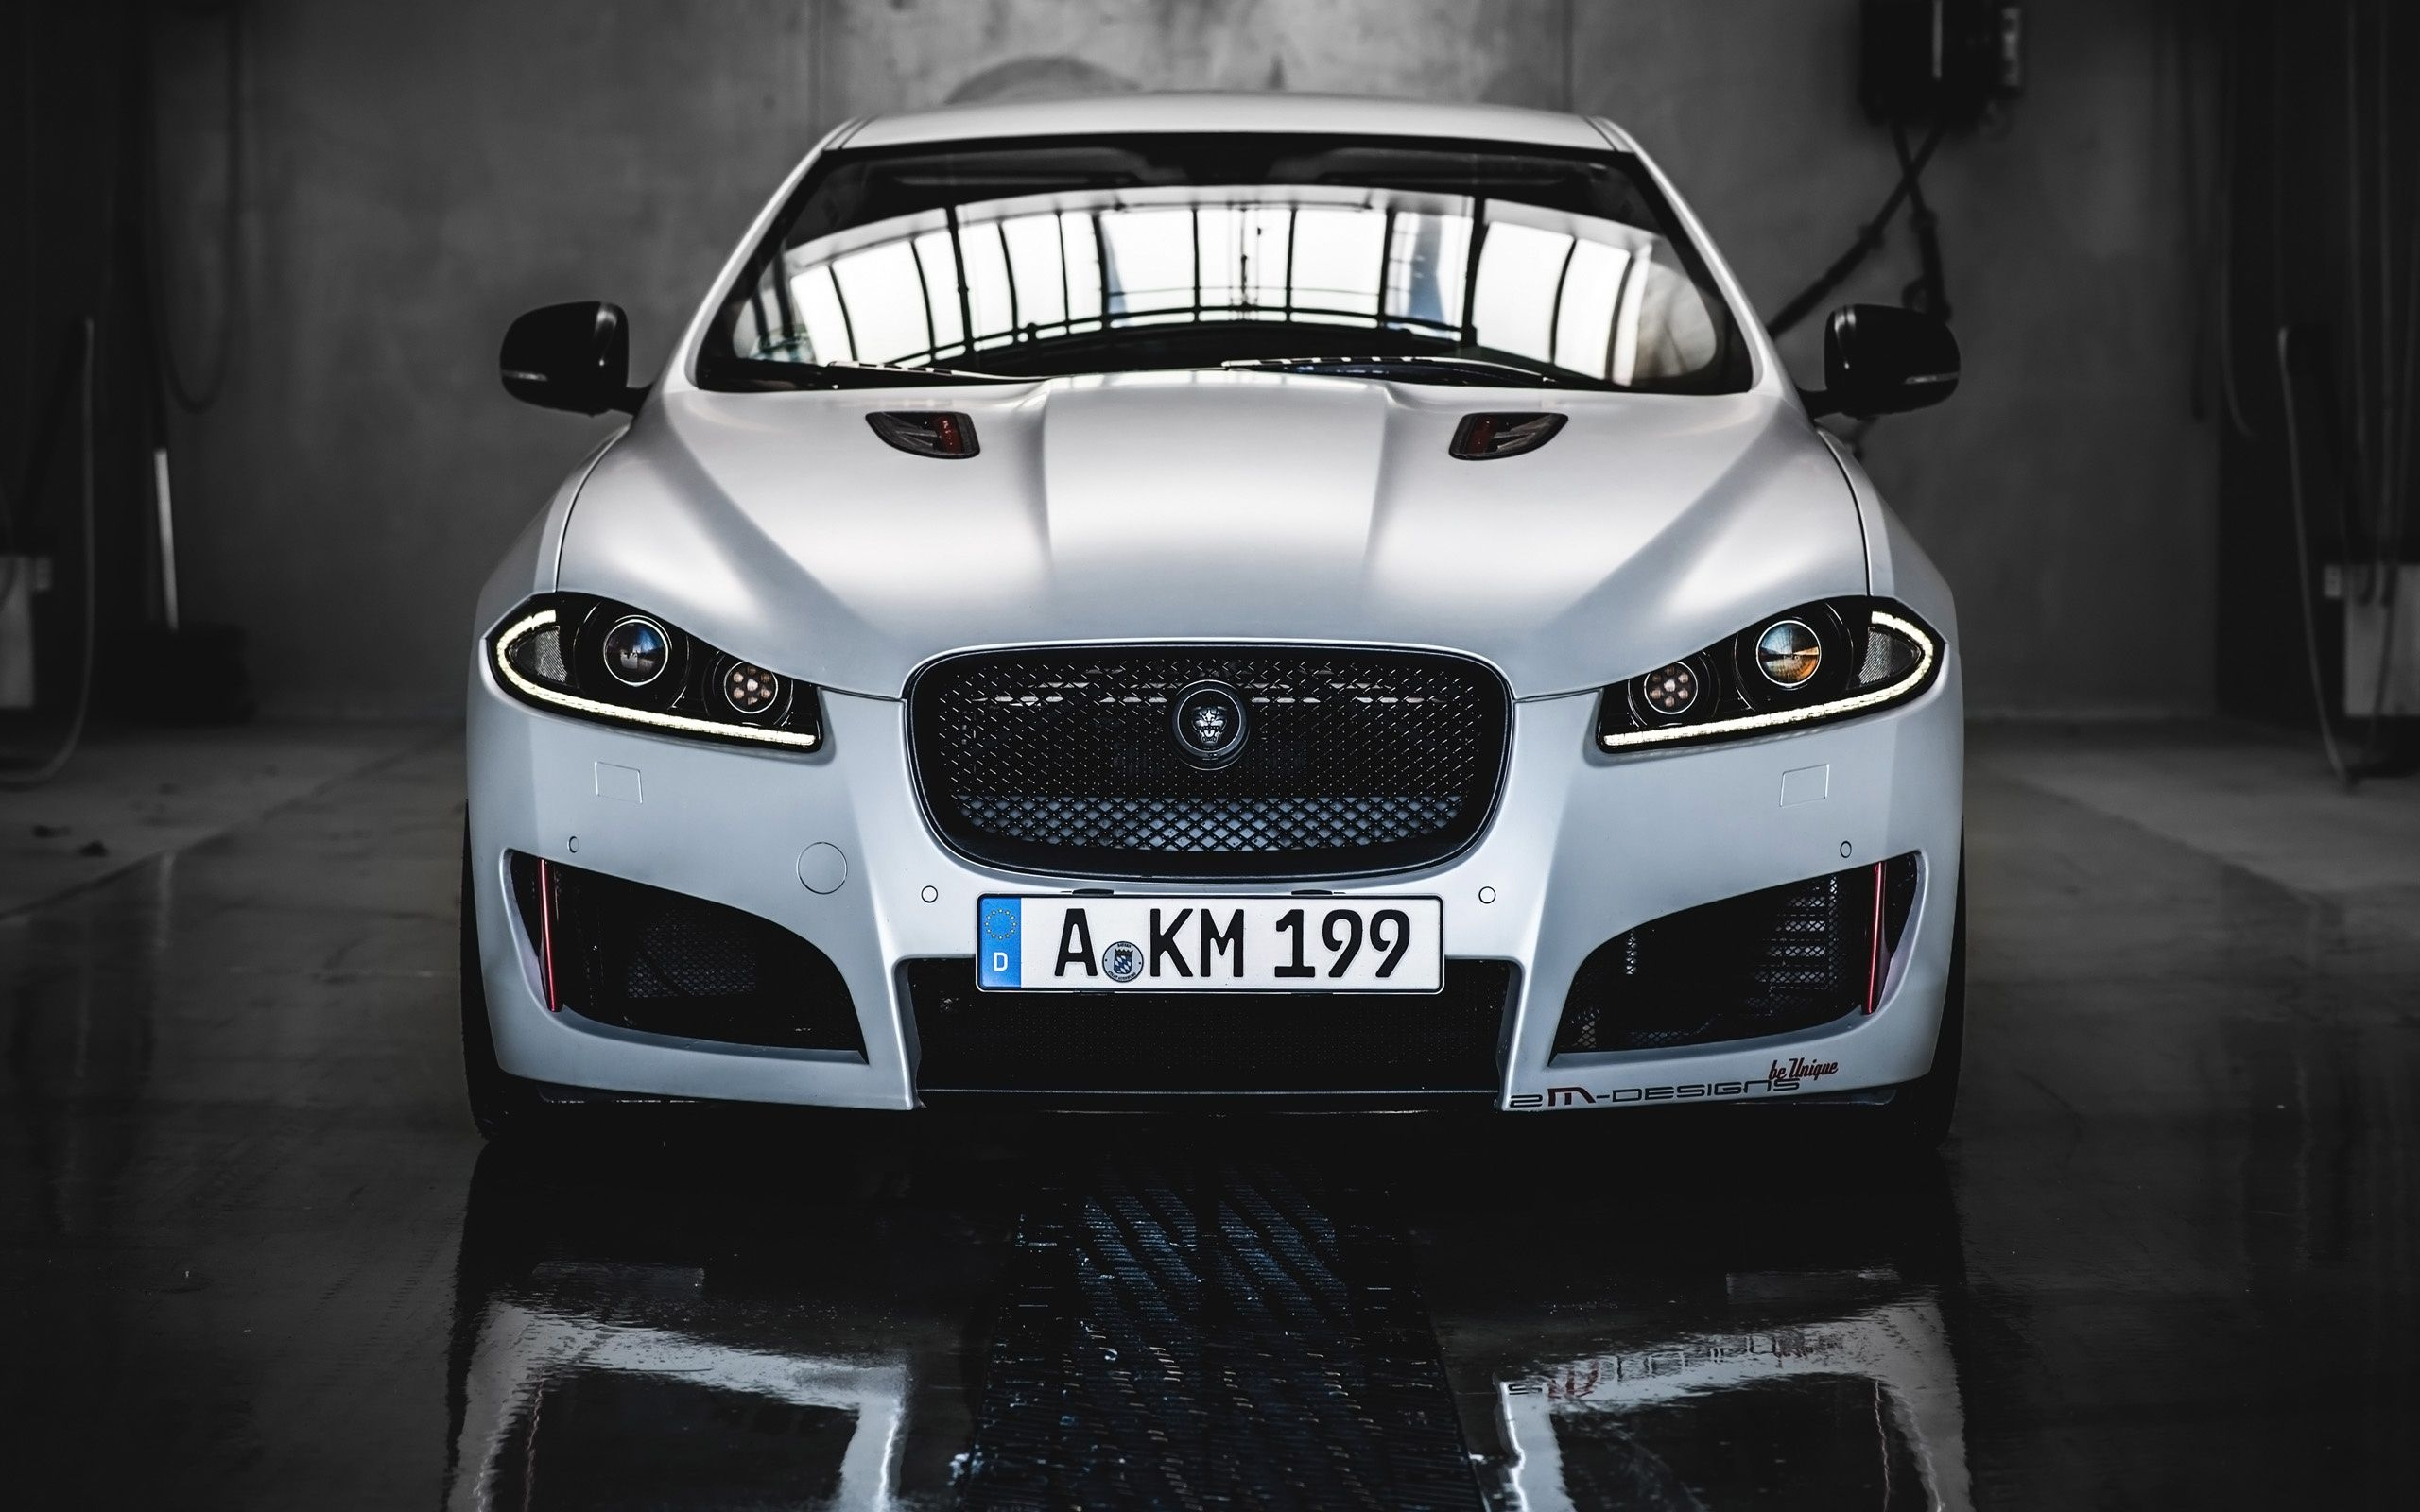 Jaguar Xf Front Hd Wallpaper Hd Wallpapers Pinterest Wallpaper Jaguar Xf Jaguar Jaguar Car